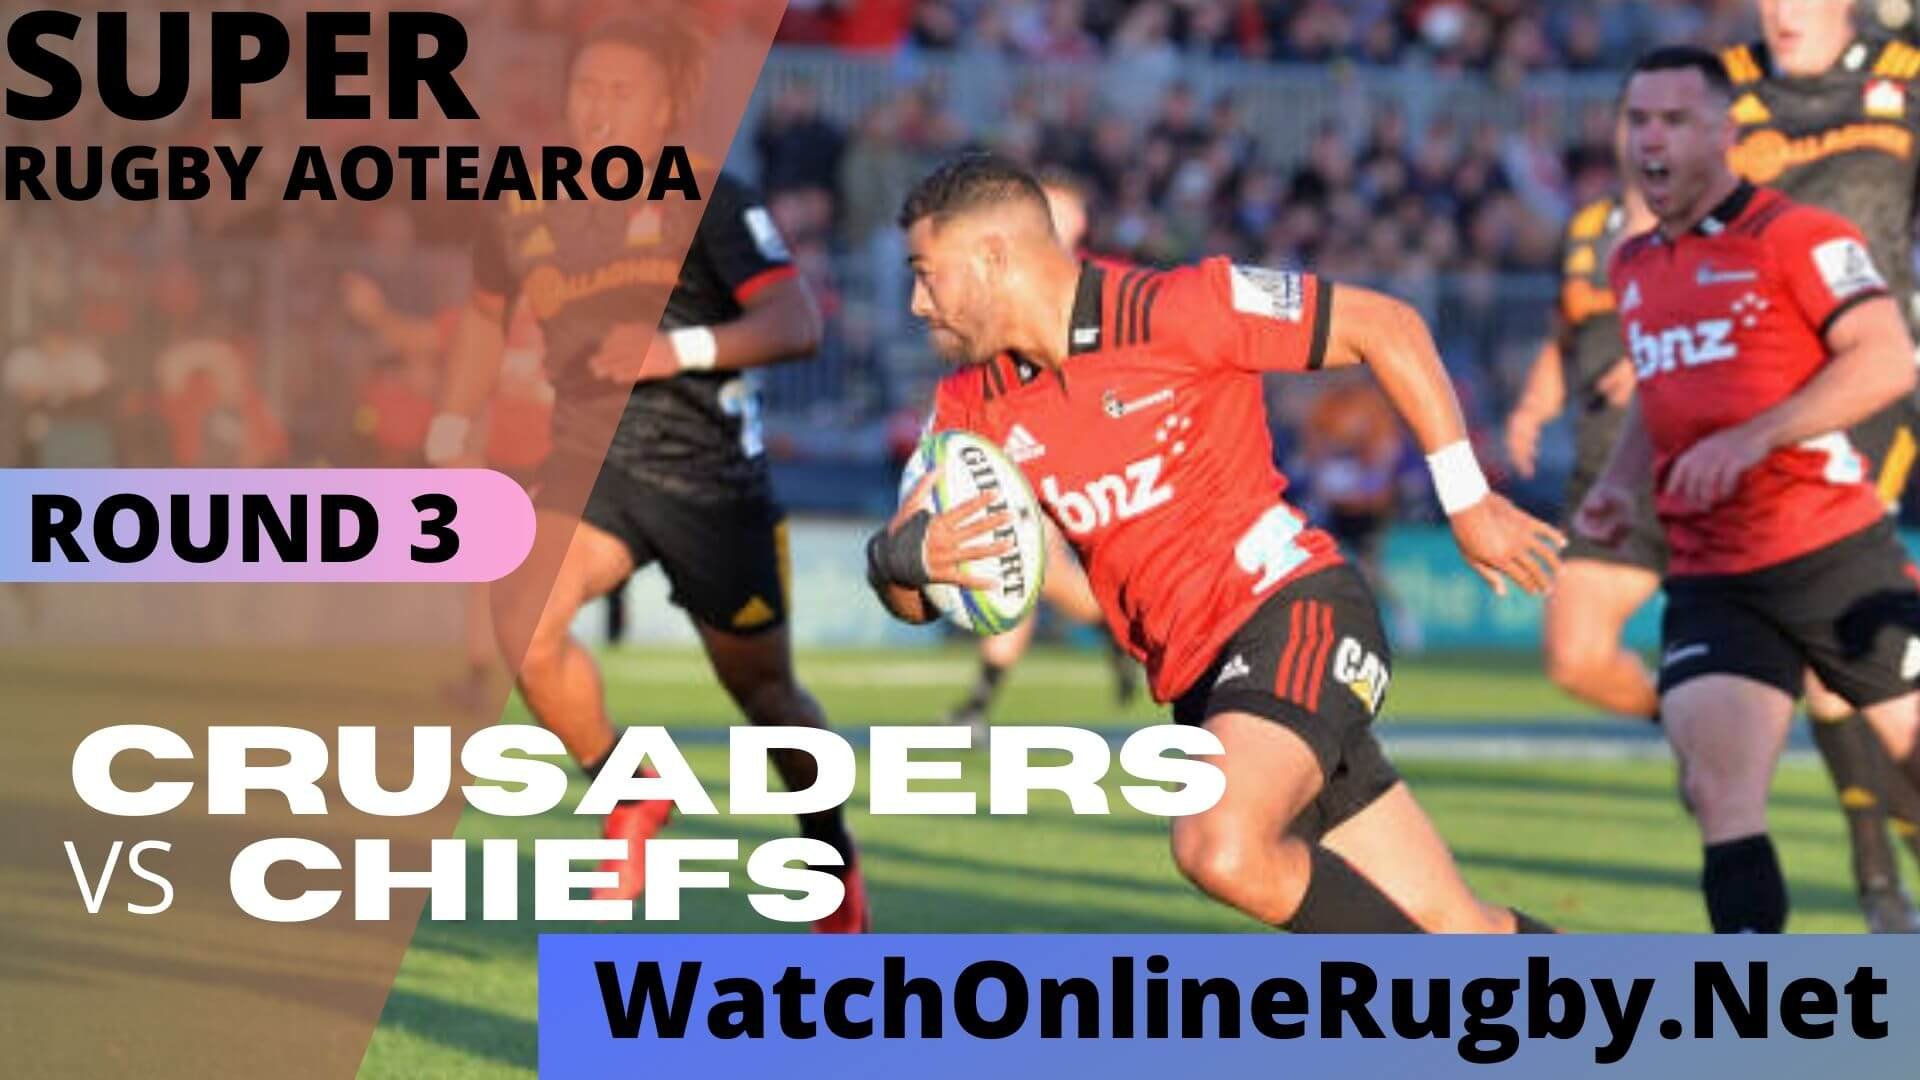 Chiefs Vs Crusaders Highlights Rd 3 Super Rugby Aoteatroa